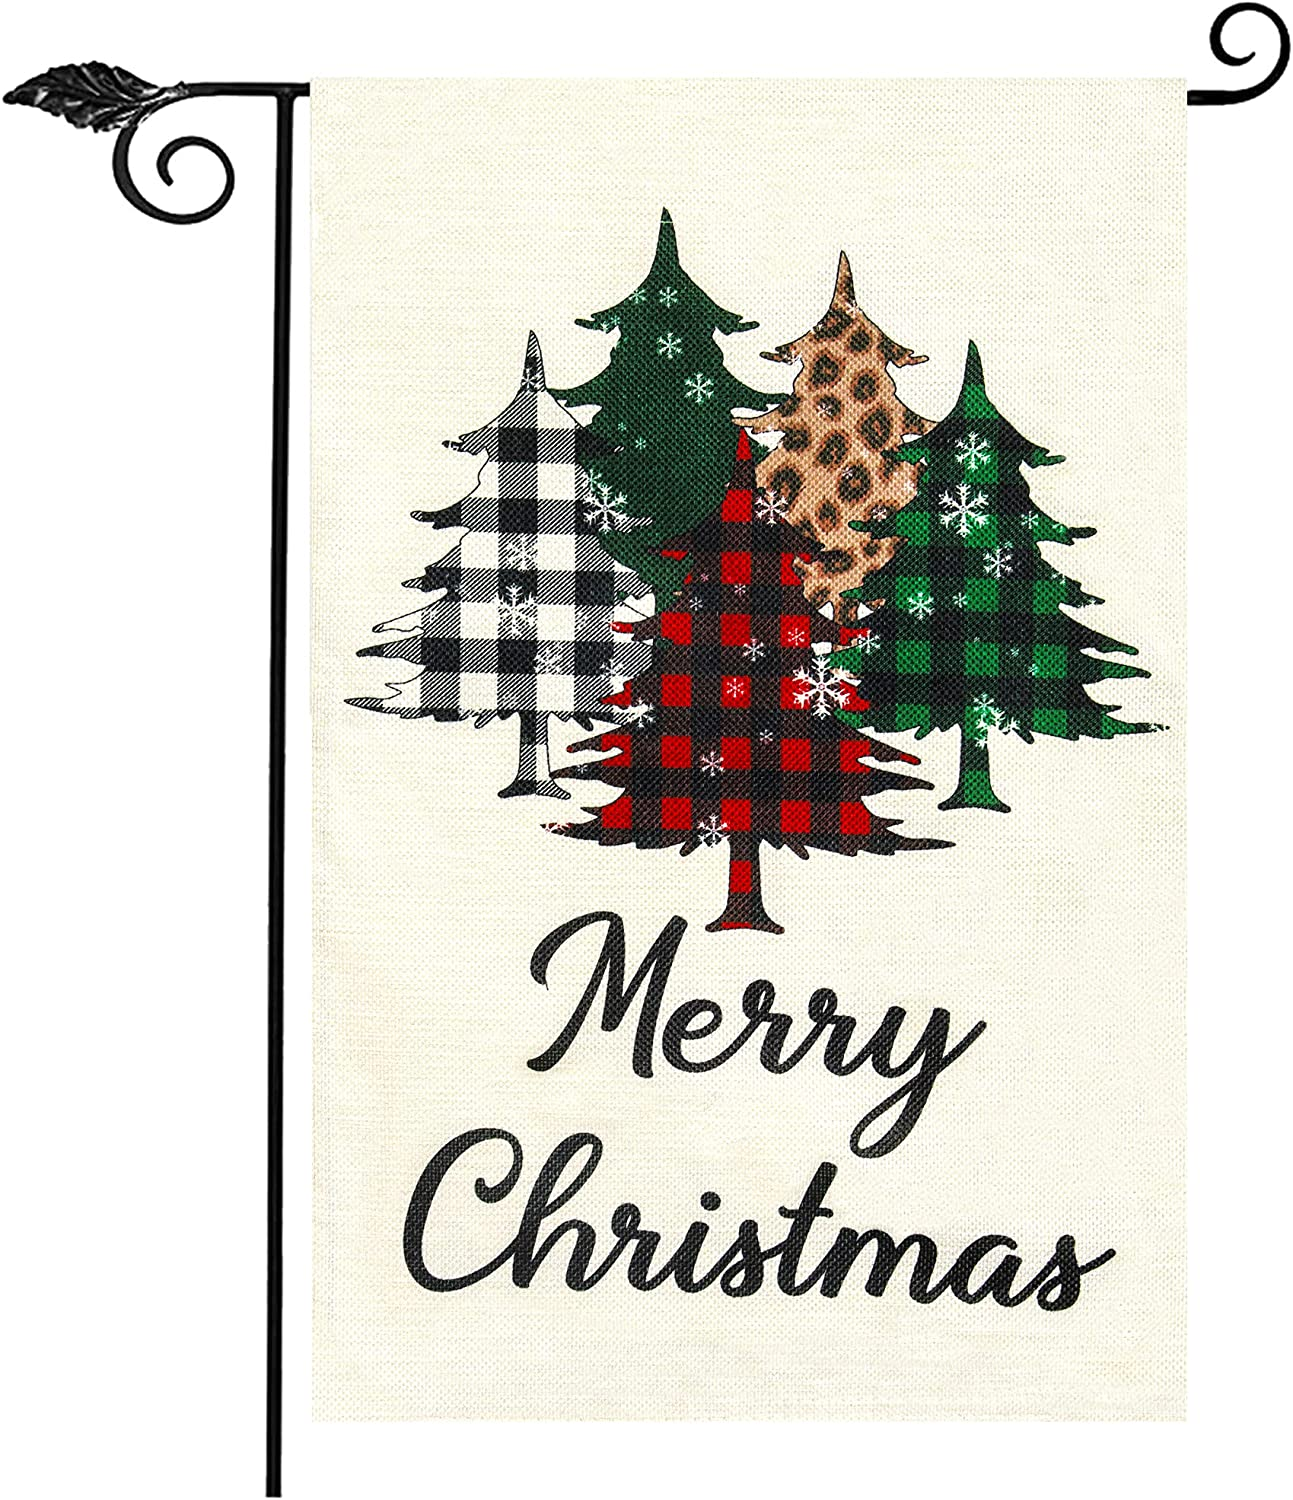 Unves Merry Christmas Garden Flag, Christmas Flag Double Side Buffalo Check Plaid Tree Christmas Decorations Yard Flag for Winter Holiday House Lawn Outdoor Decoration (12.5 x 18 Inches)